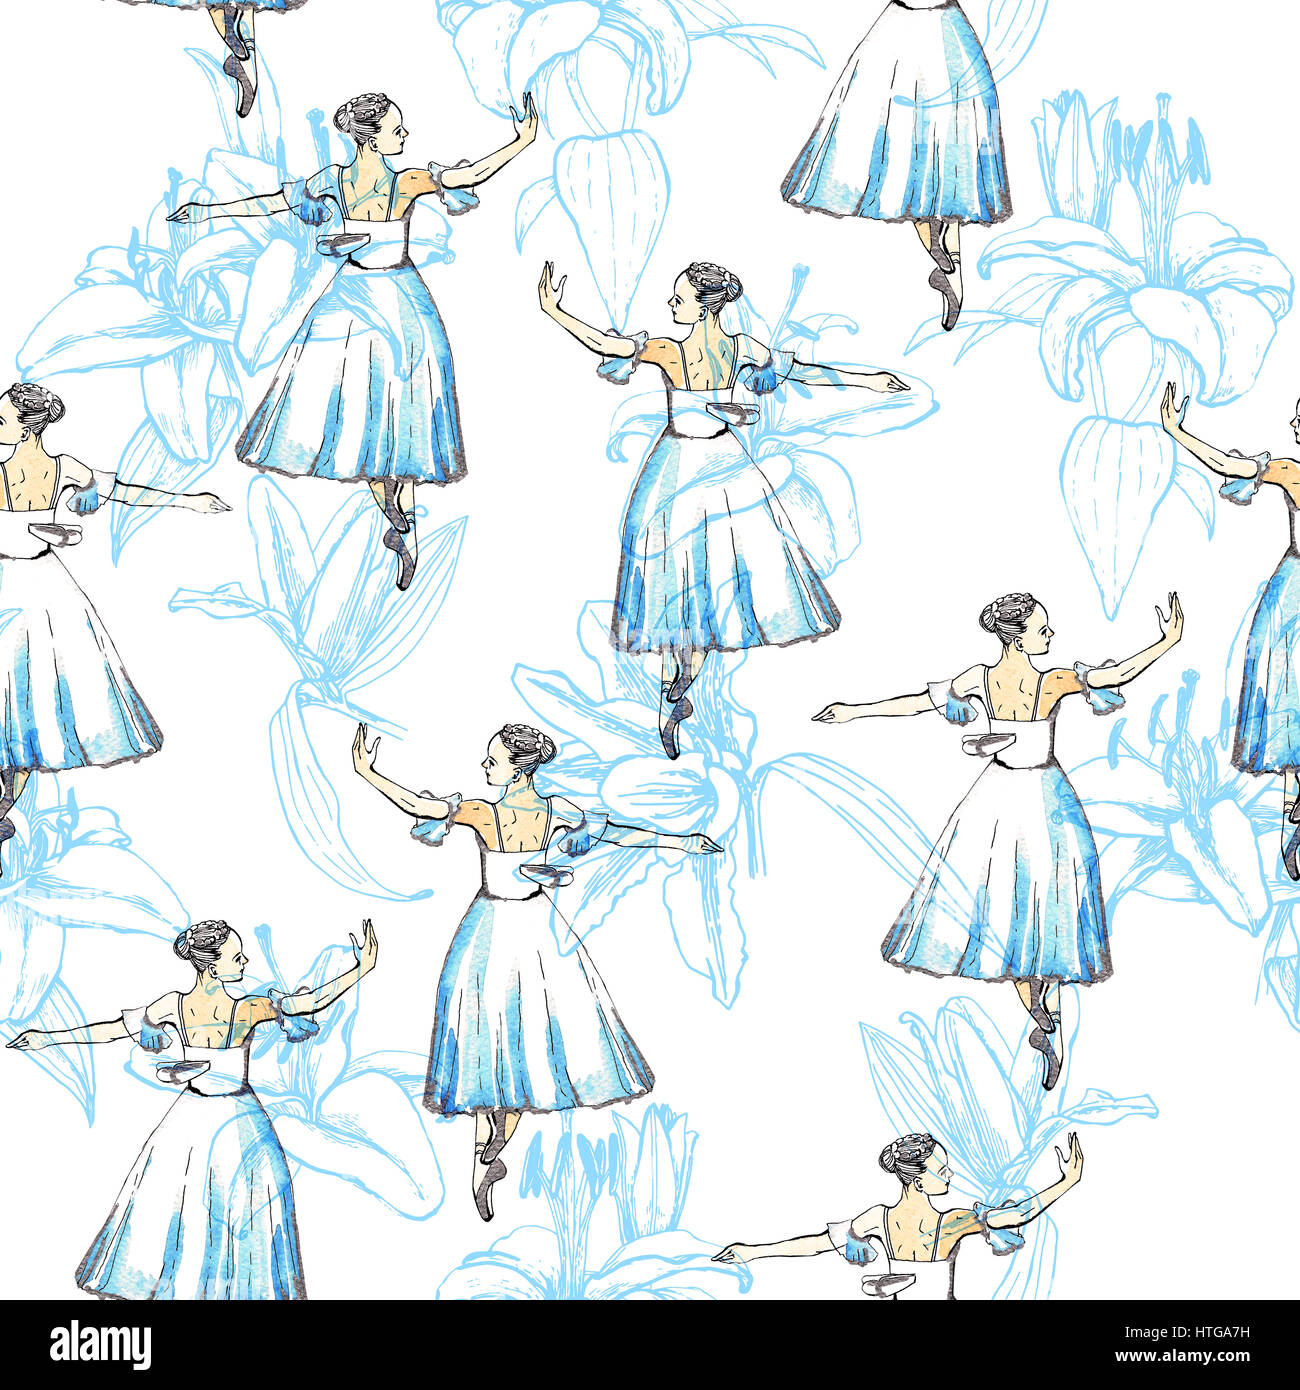 Seamless pattern of ballet dancers royalty free stock photography - Seamless Pattern Of Ballet Dancers And Lilies Black And Silver Drawing Watercolor Painting